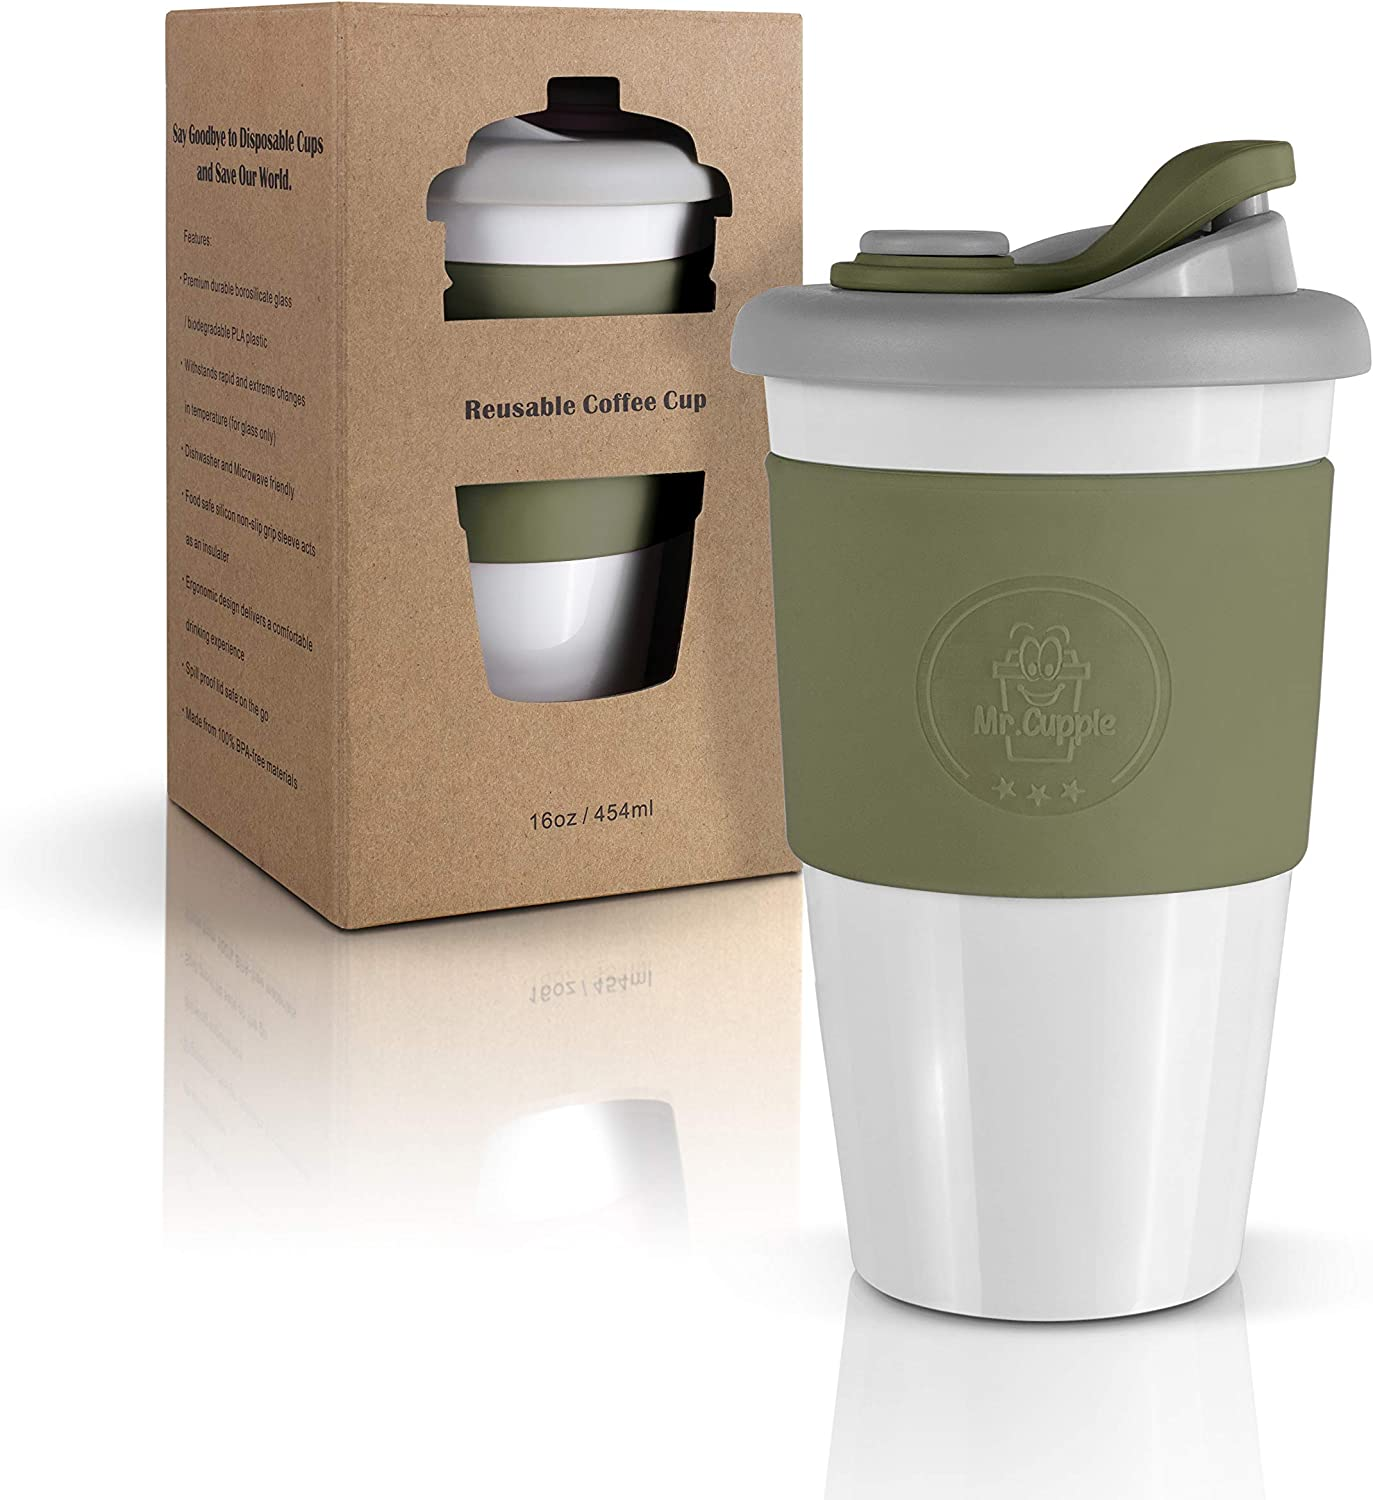 Mr.Cuppie Reusable Coffee Cup with Lid, Lightweight Portable Travel mug, Dishwasher and Microwave Friendly To-go Eco Coffee Mug, 16oz